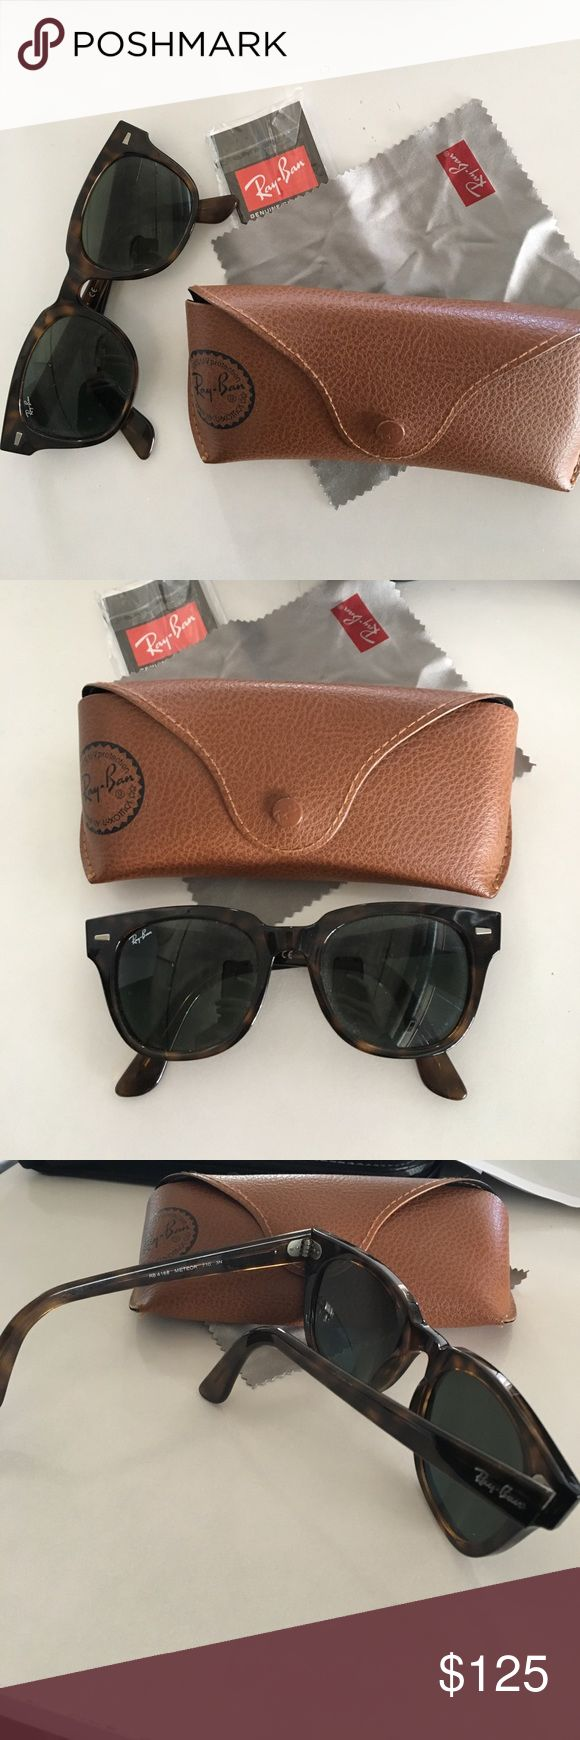 Ray Ban Meteor Sunglasses Gorgeous dark brown tortoise print Meteor style Ray Bans. Authentic, perfect condition, comes with case, original tags and cleaning cloth. Ray-Ban Accessories Sunglasses